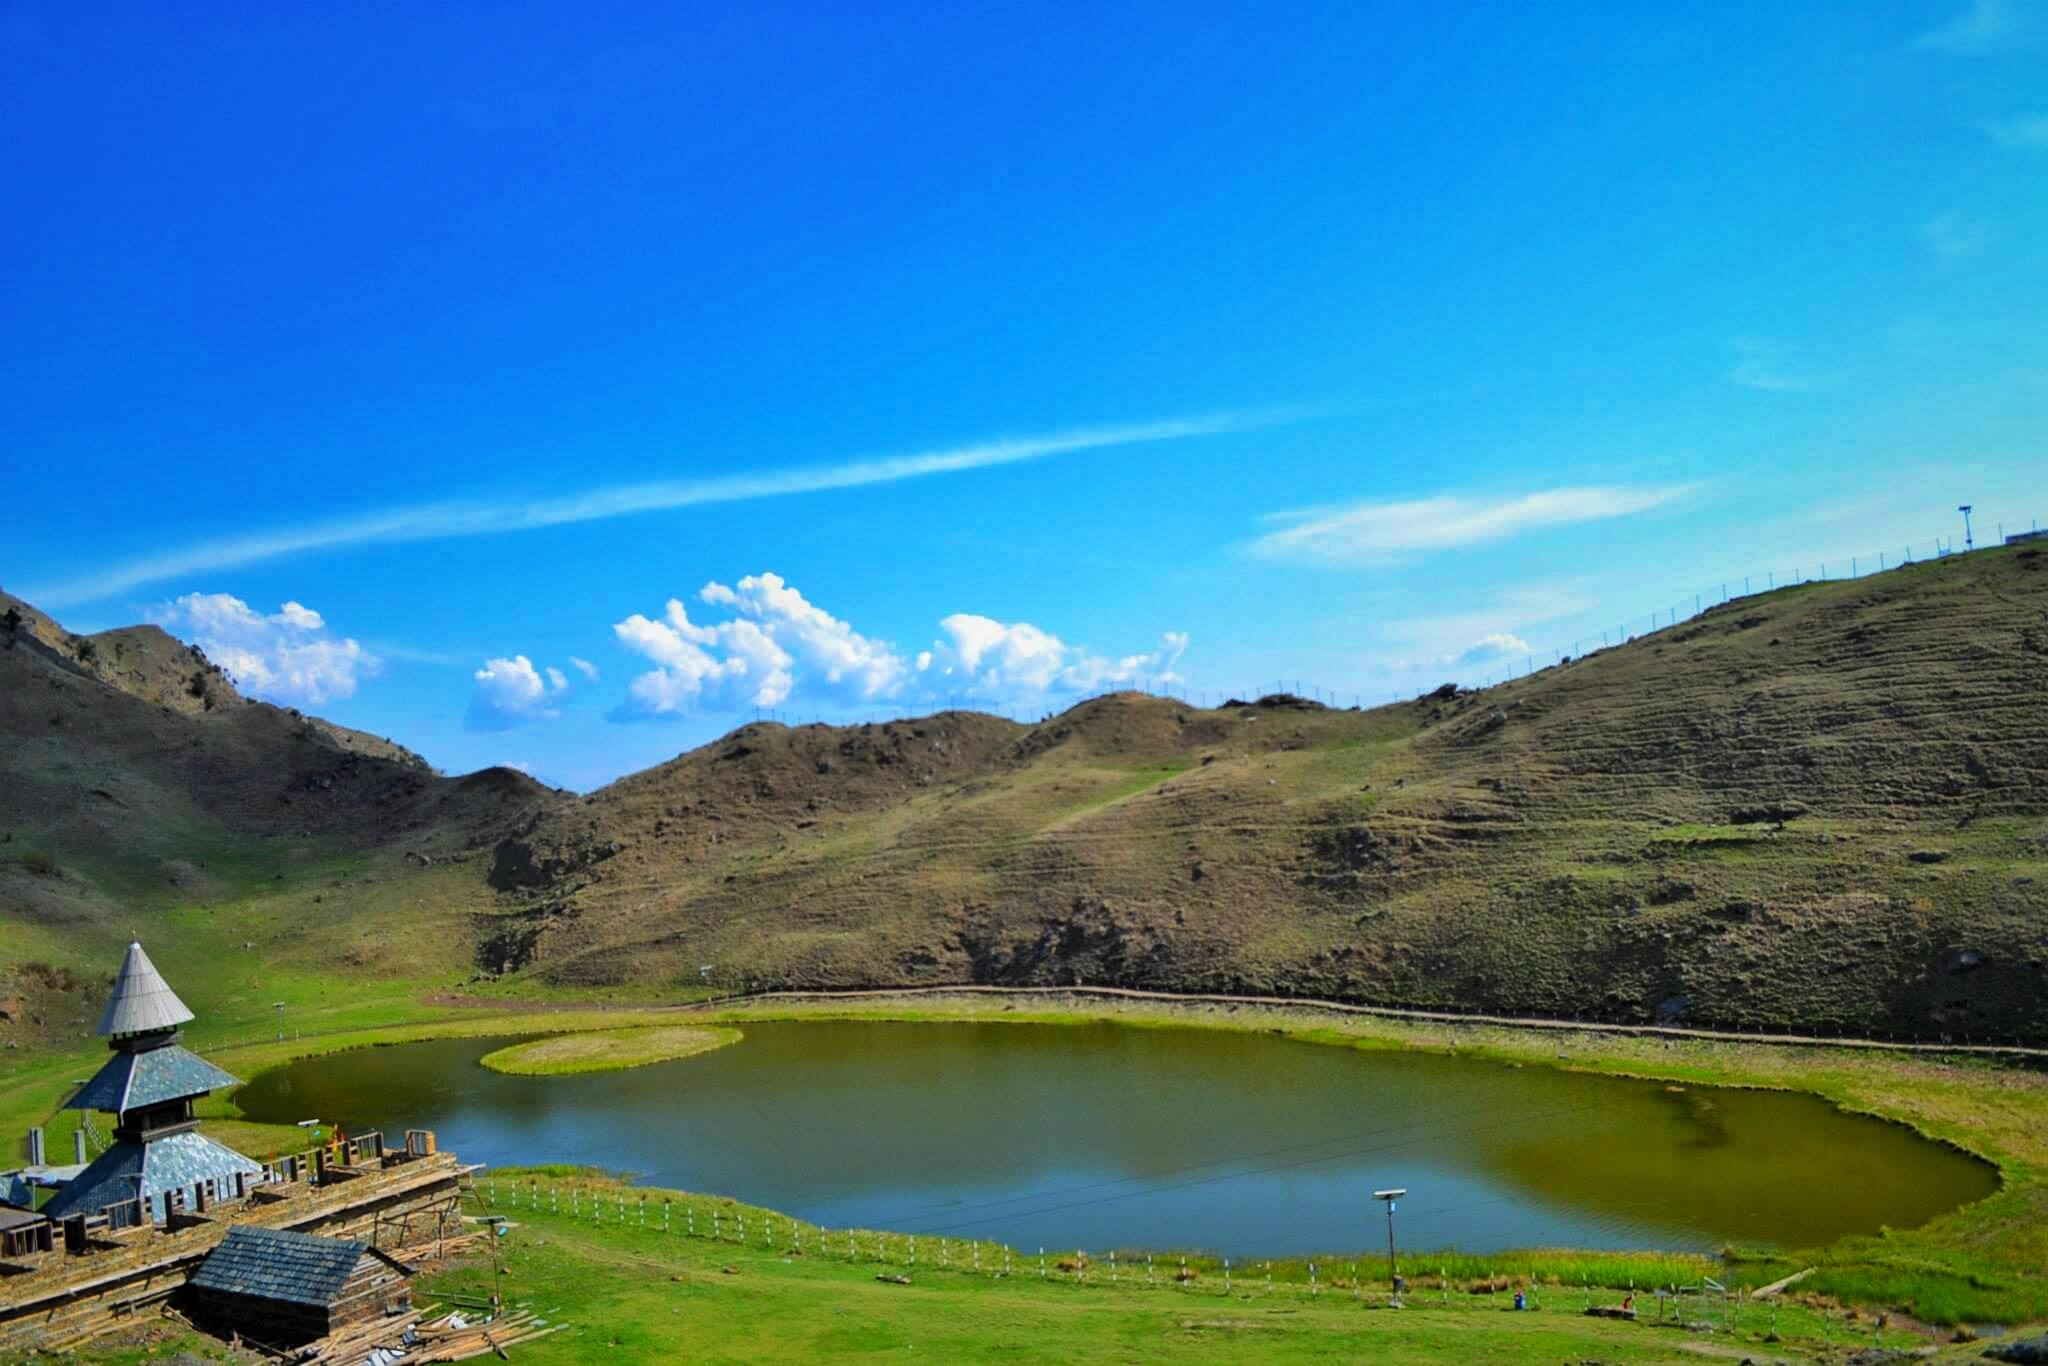 prashar-lake